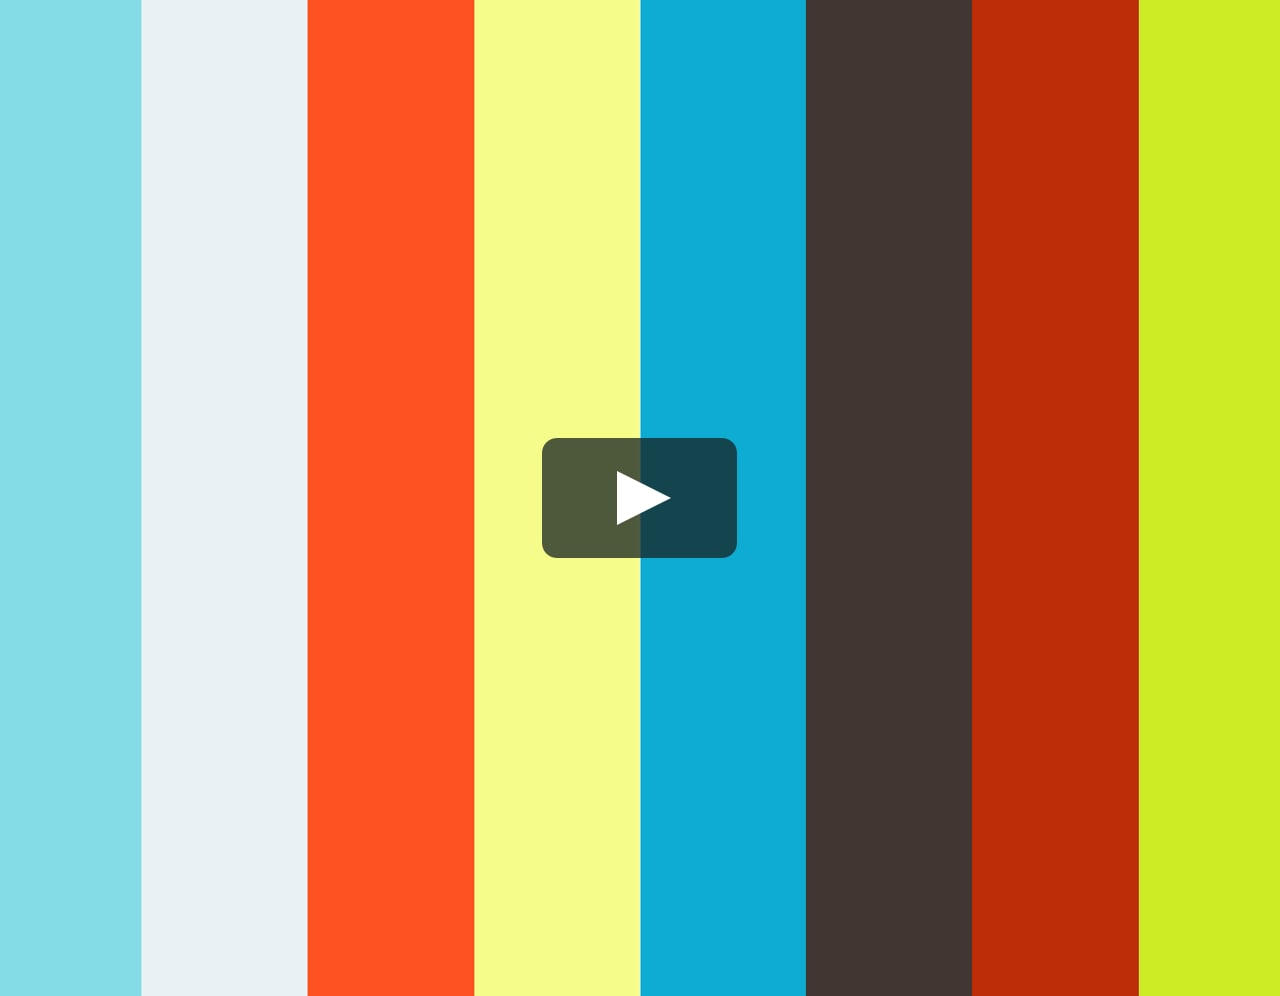 The social life of small urban spaces 1979 short version - William whyte the social life of small urban spaces model ...